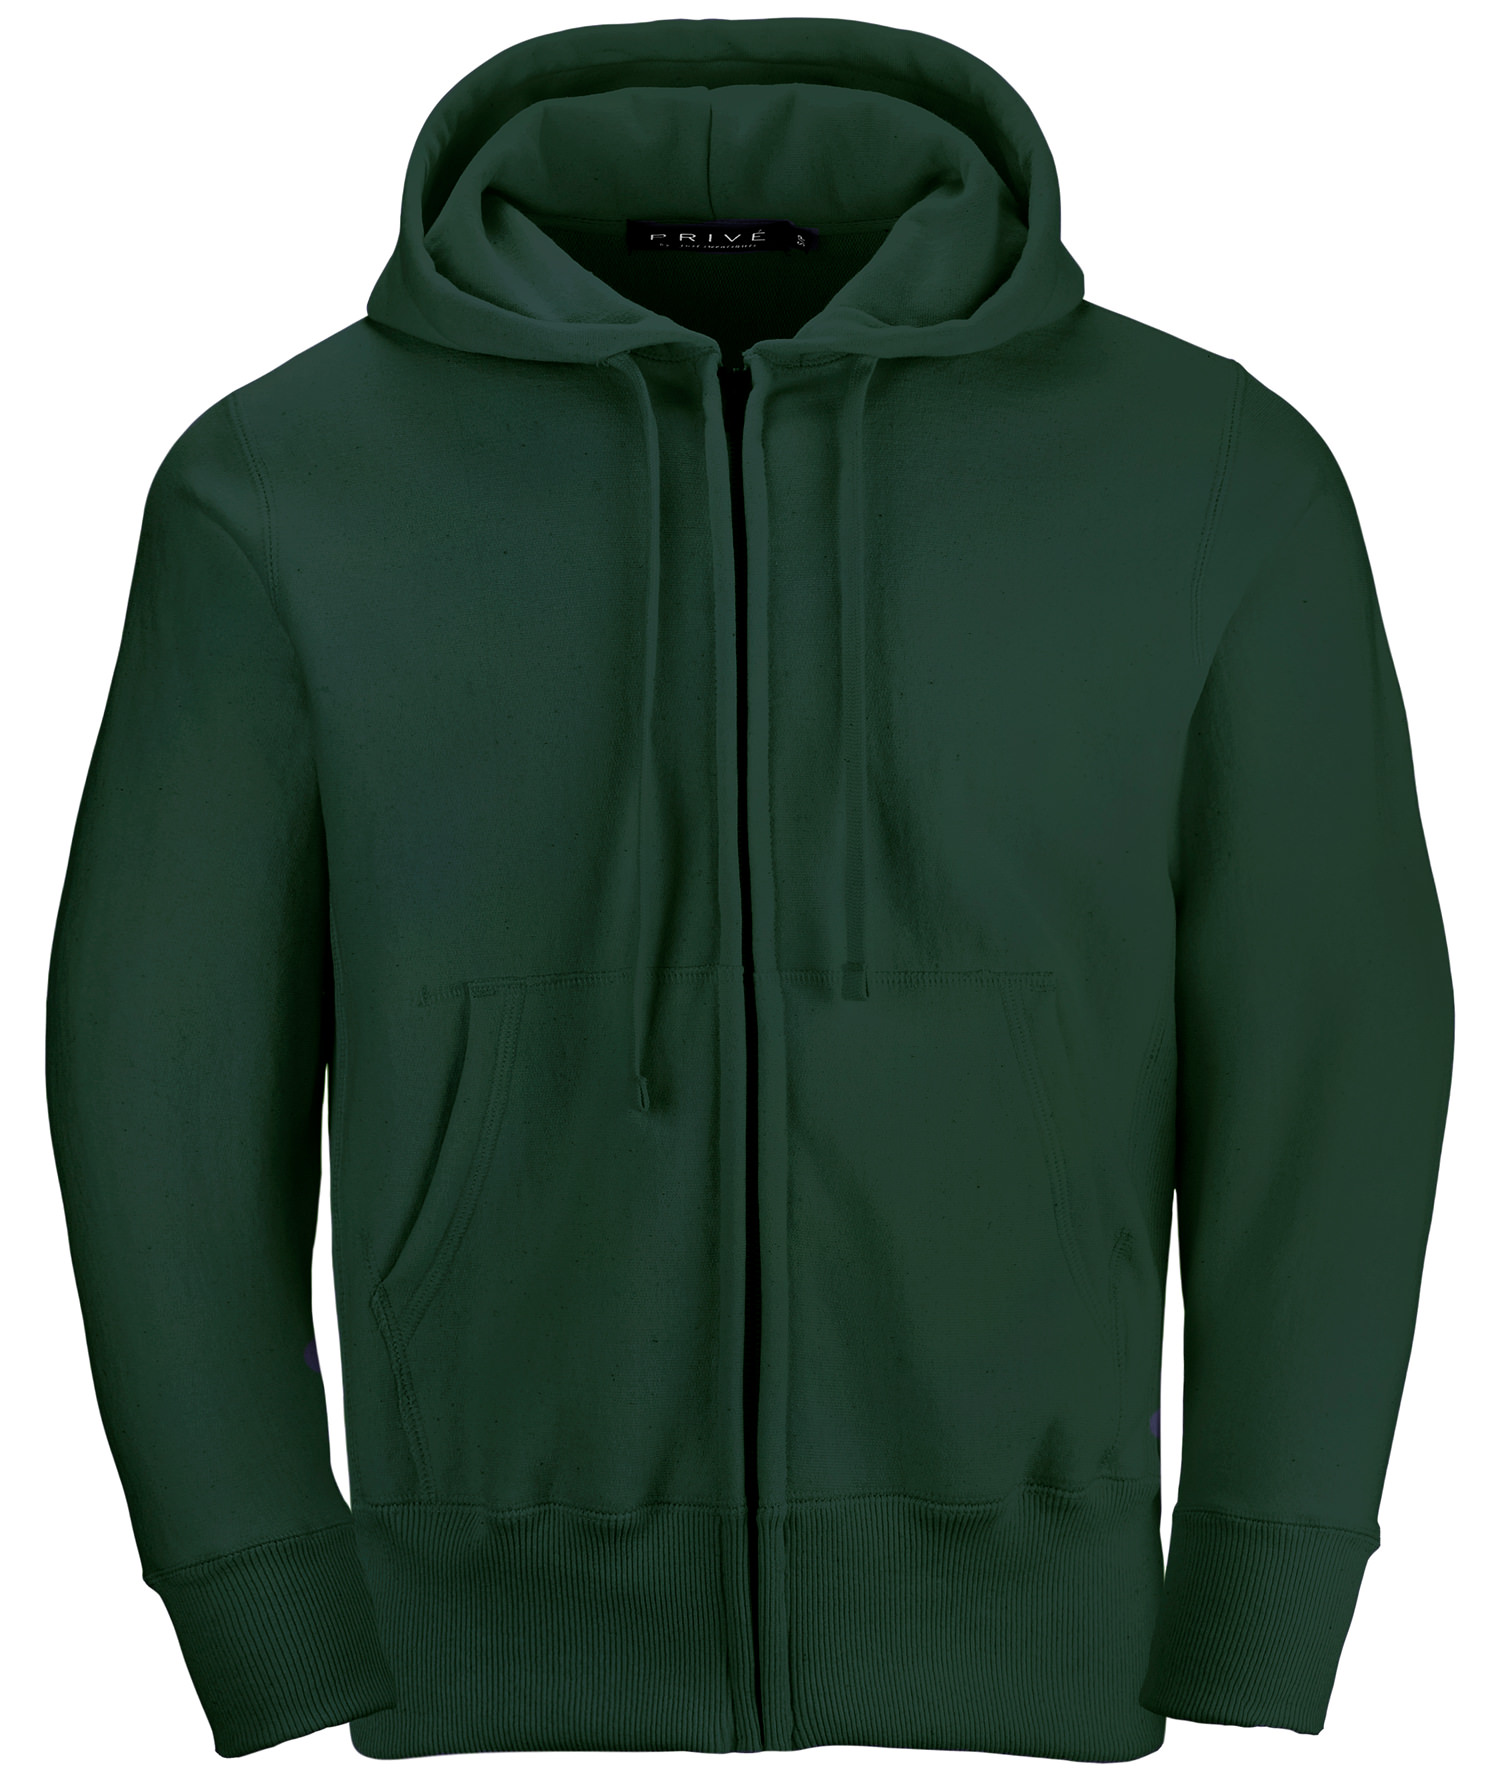 PRIVÉ Full Zip Hoodie Park Green with Side Rib 100% Cotton